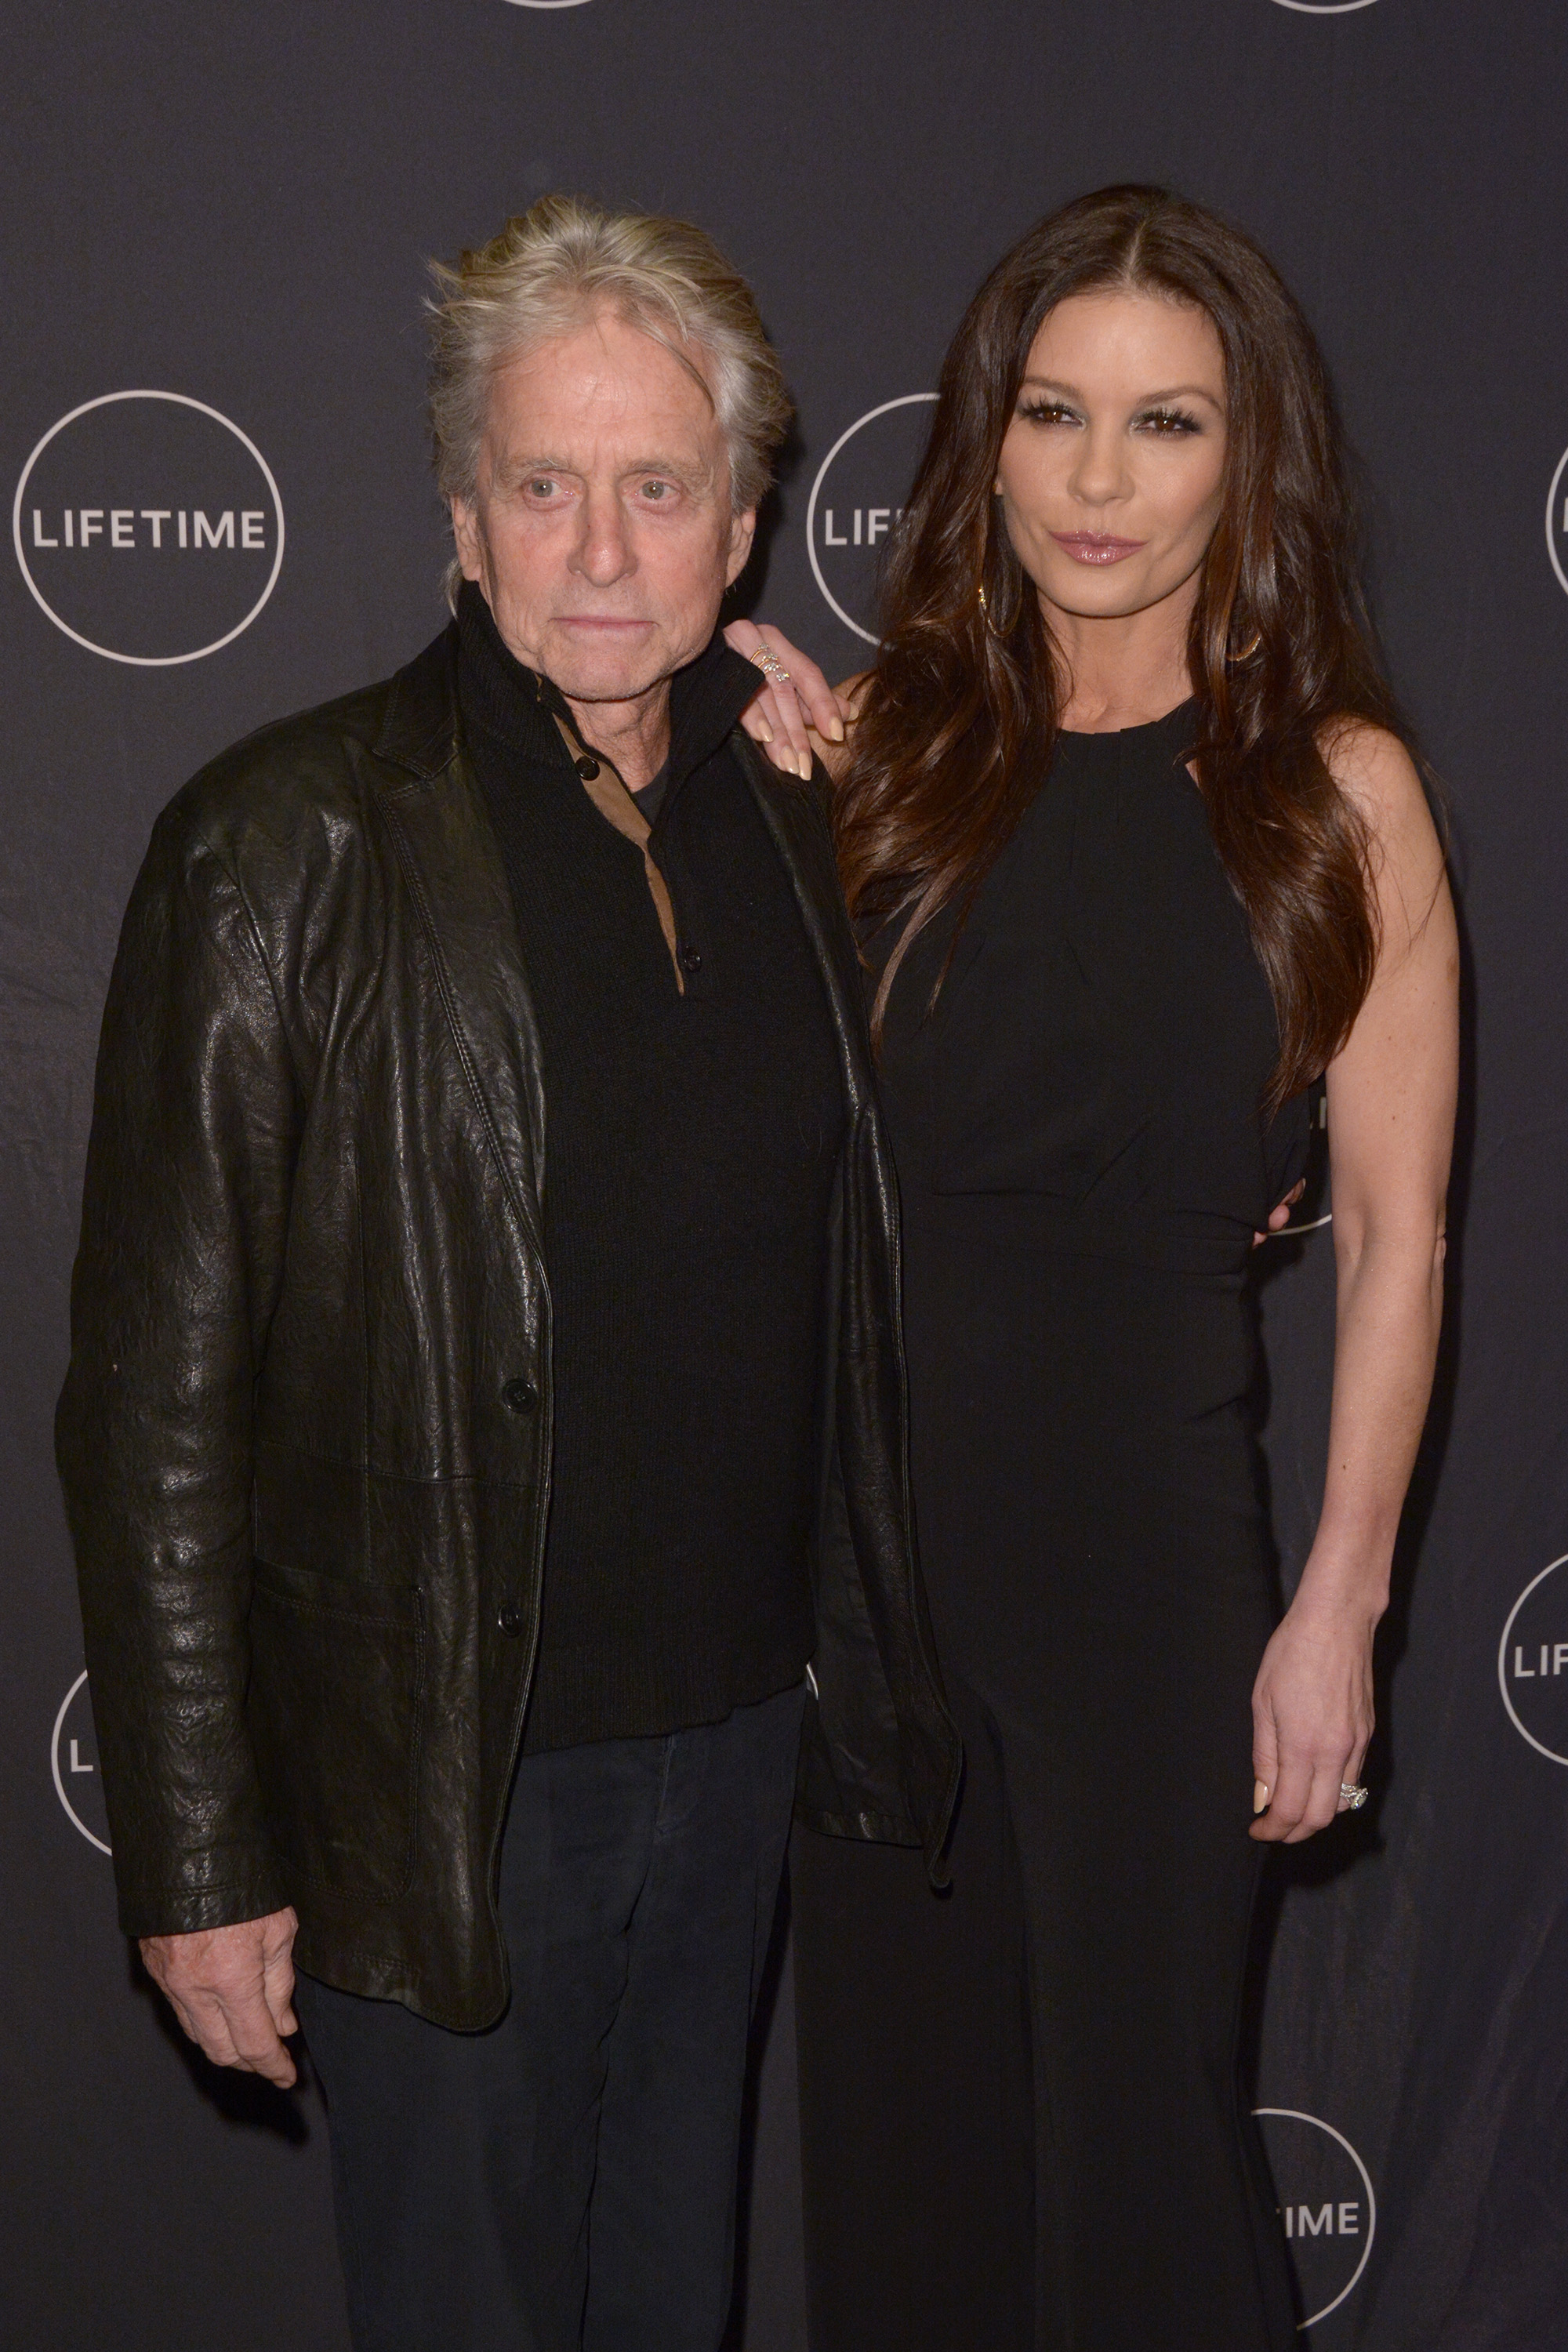 'Cocaine Godmother, The Griselda Blanco Story' - Screening at NeueHouse Madison Square - Arrivals                                    Featuring: Michael Douglas, Catherine Zeta-Jones                  Where: New York City, New York, United States                  When: 01 Dec 2017                  Credit: Ivan Nikolov/WENN.com